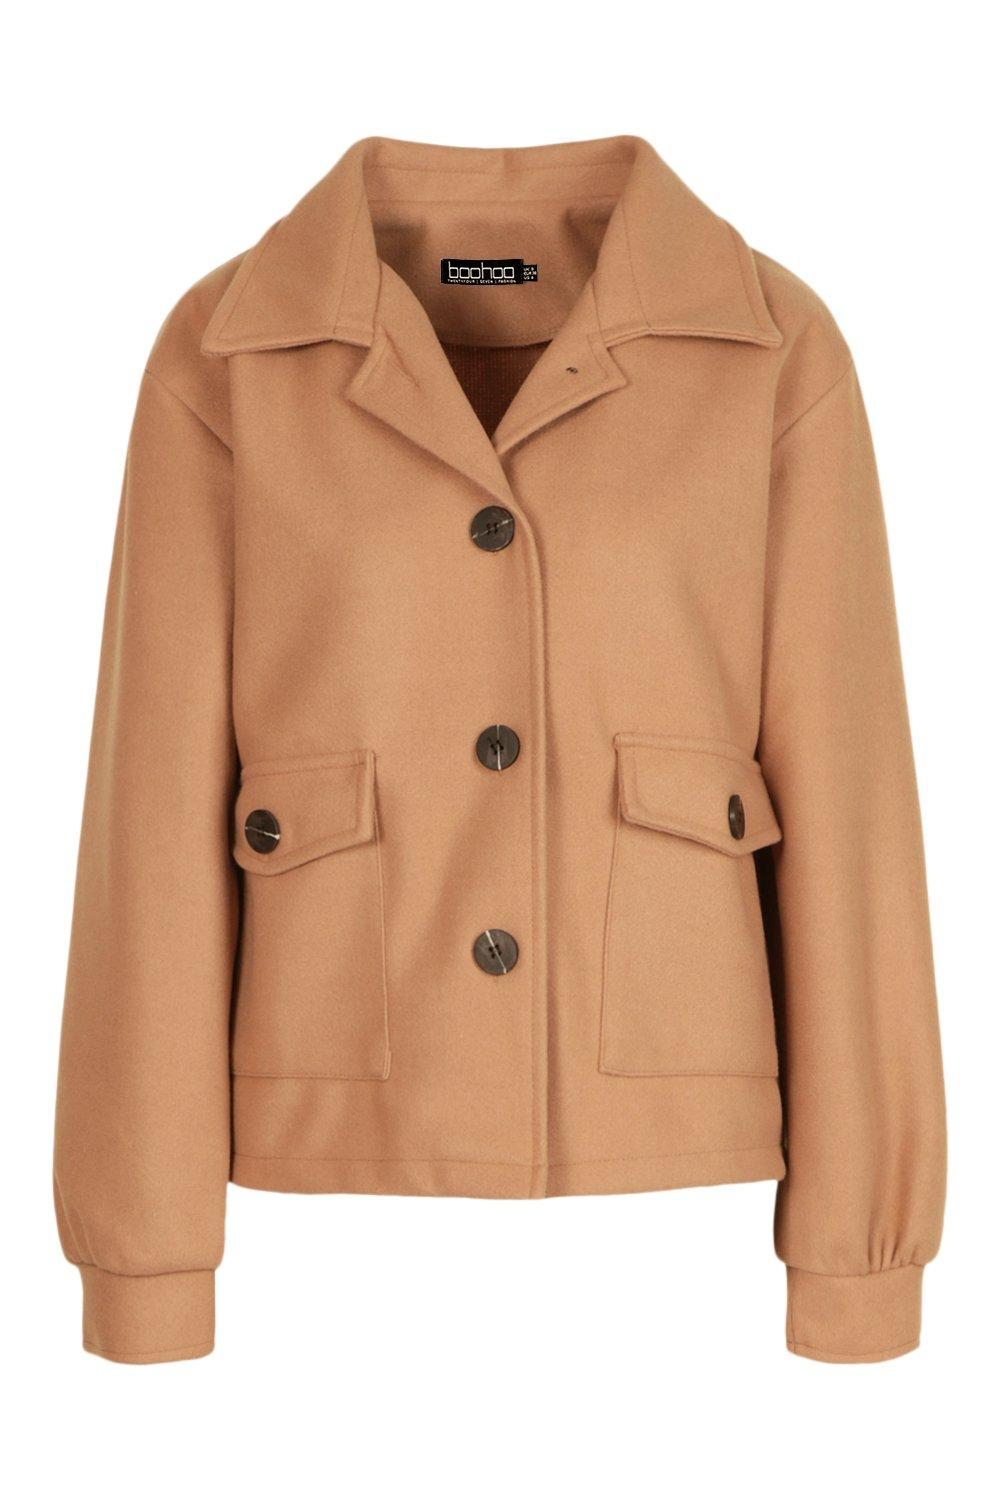 Vintage Coats & Jackets | Retro Coats and Jackets Womens Cropped Wool Look Jacket - Beige - 12 $35.00 AT vintagedancer.com